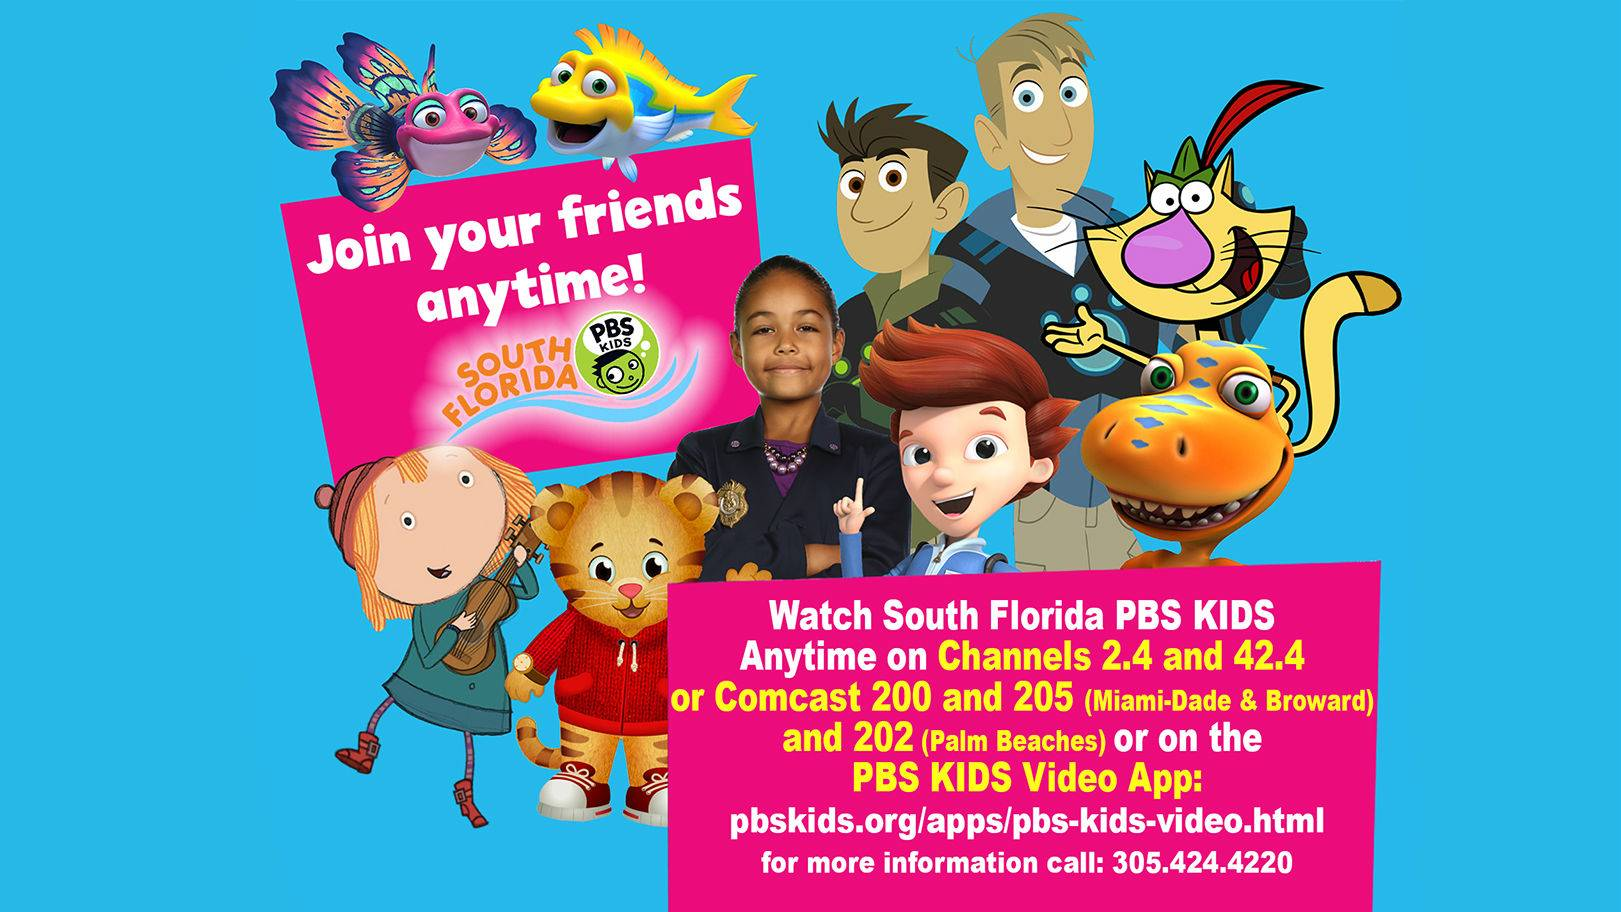 South Florida PBS Kids 24/7 Channel